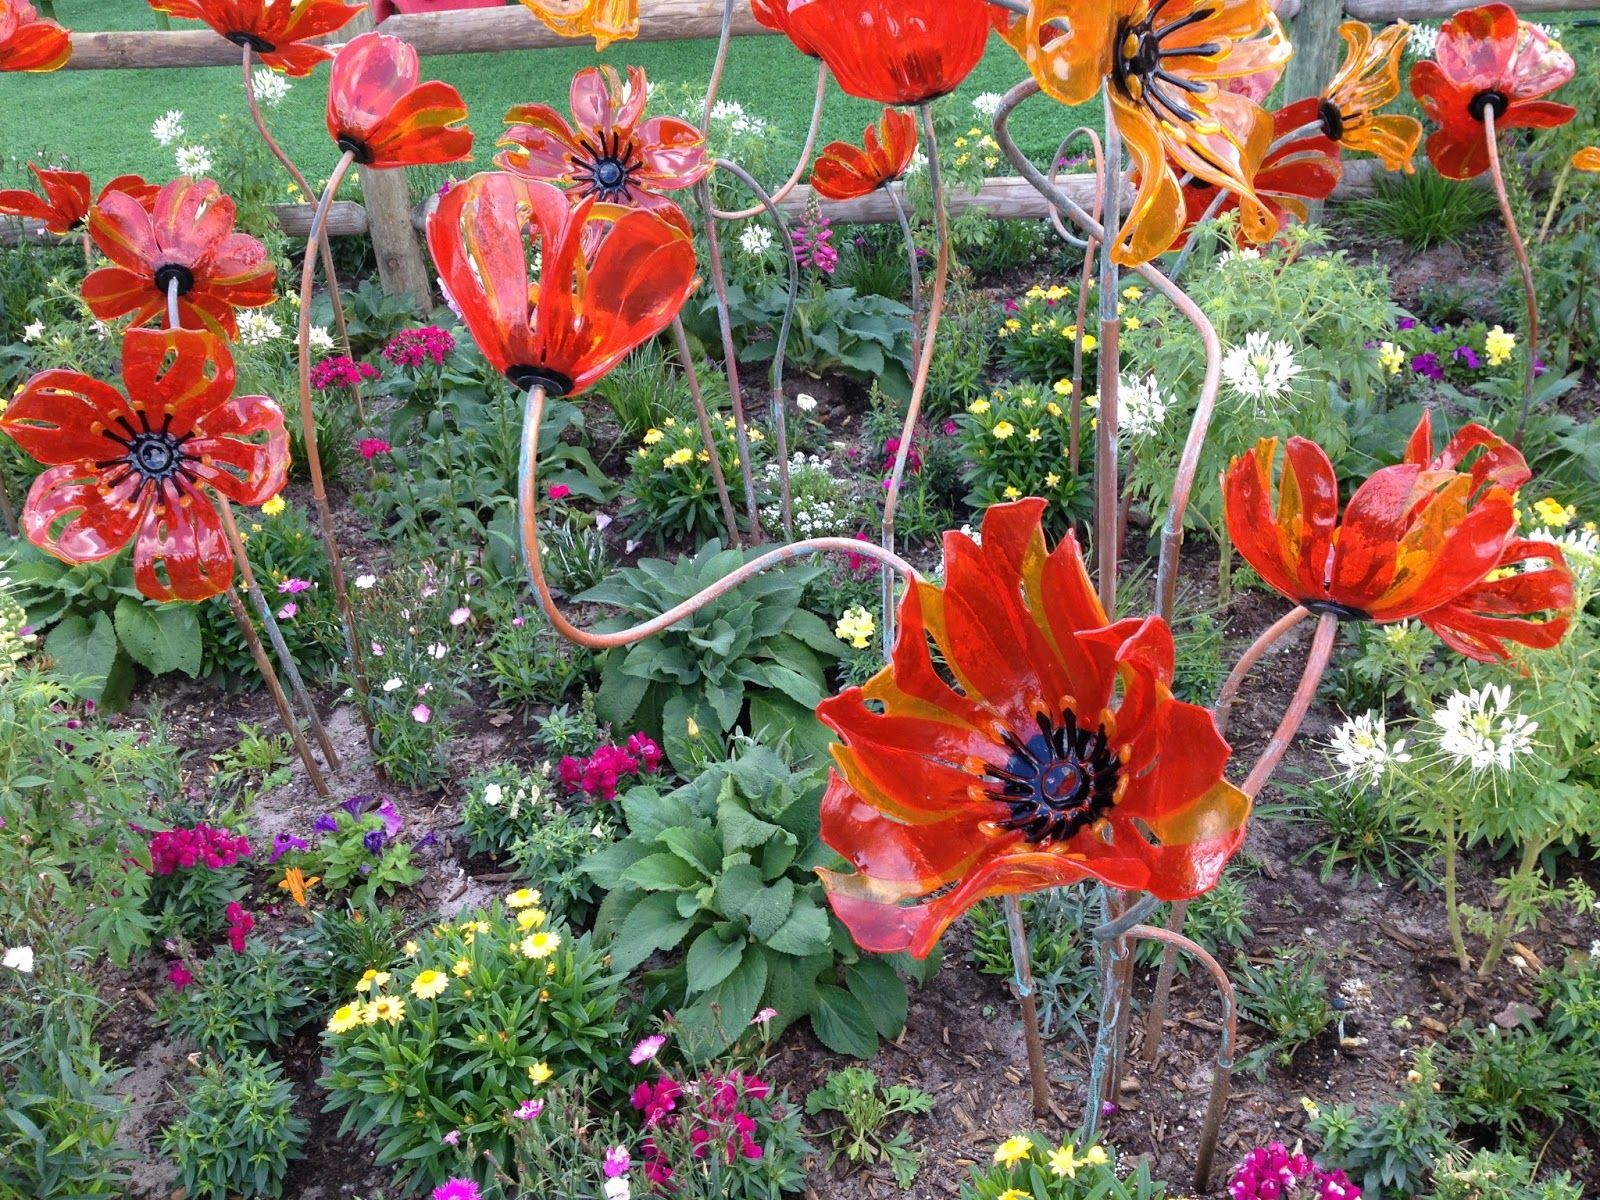 Delicieux Plus The Magic: Wordless Wednesday: Flowers And Gardens